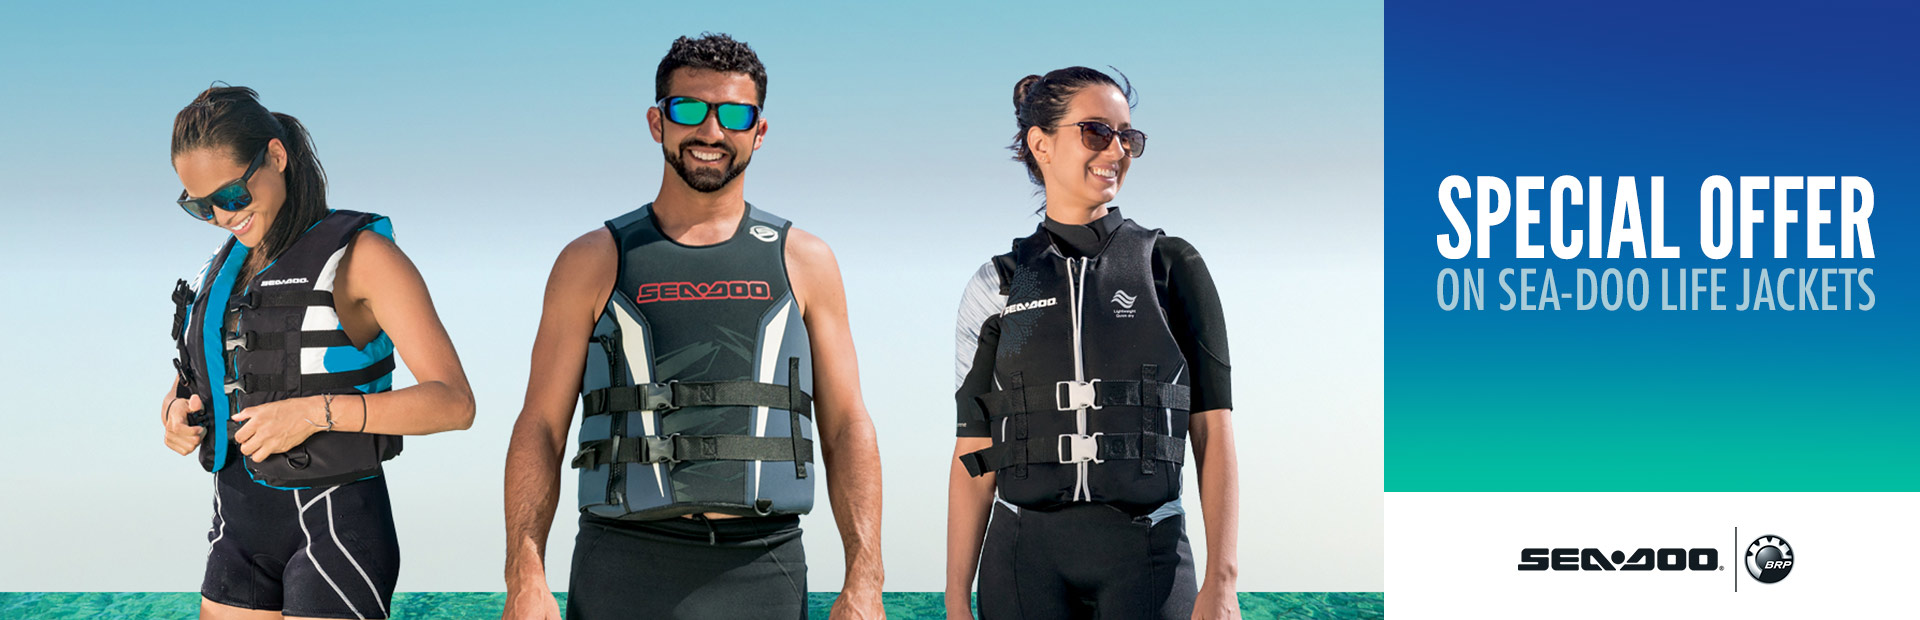 Sea-Doo: Special Offer on Sea-Doo Life Jackets